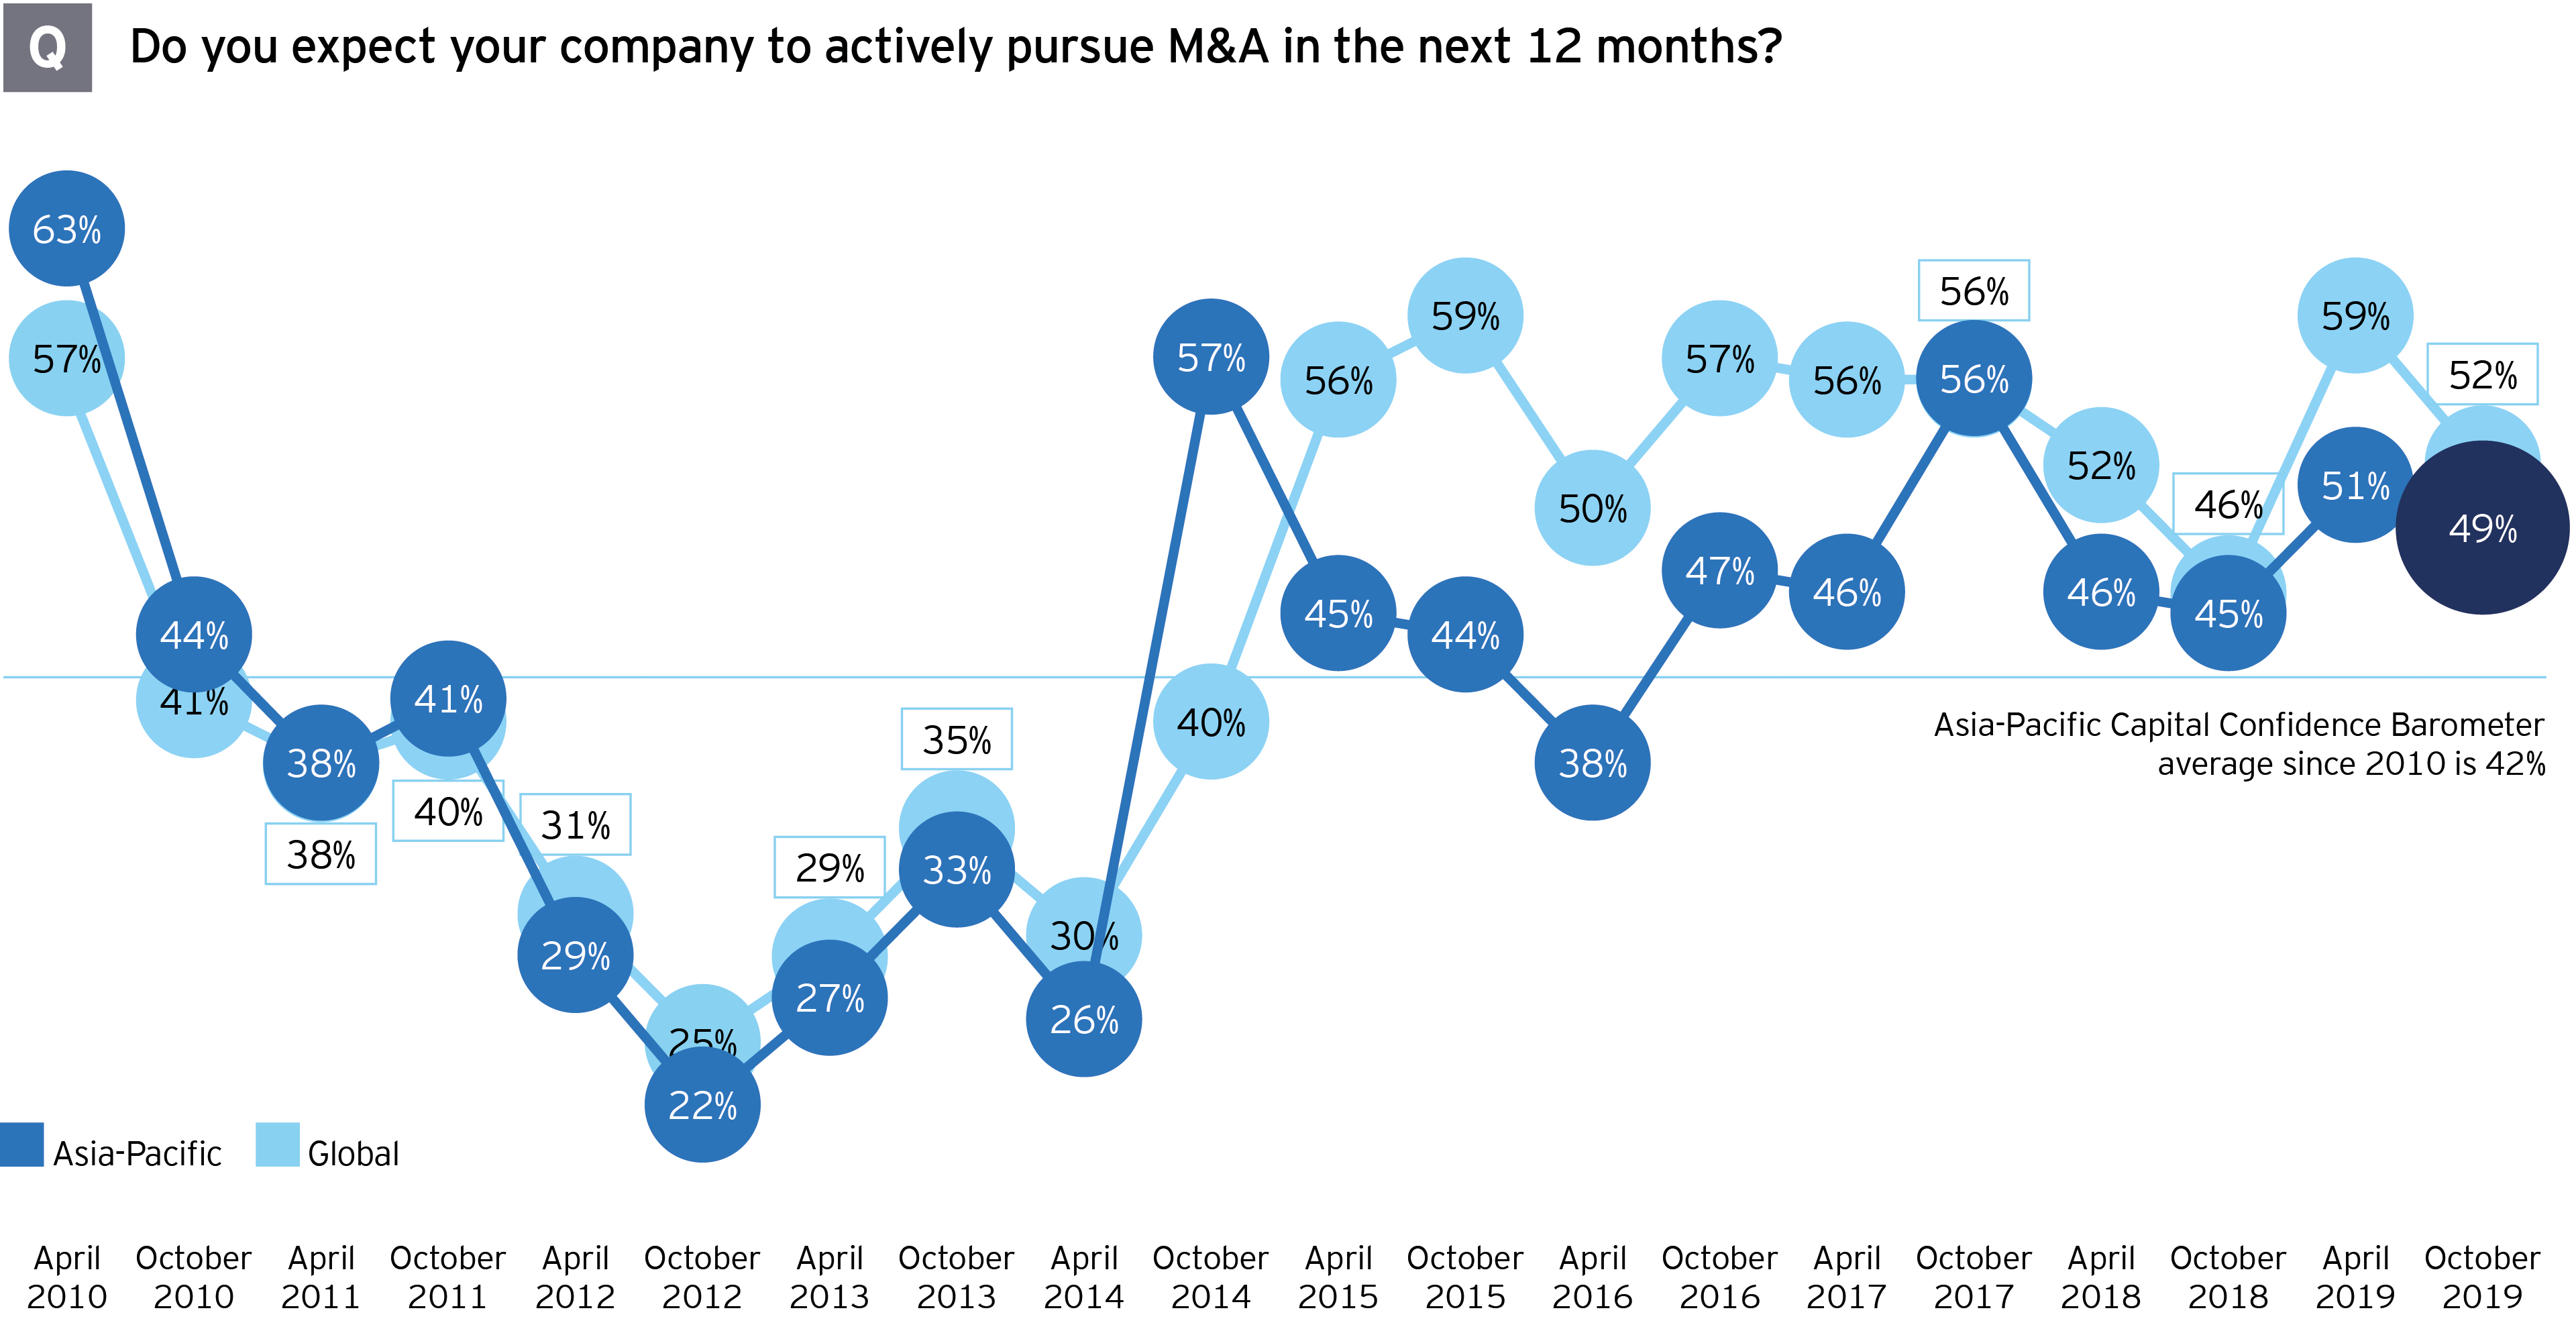 APAC actively pursue M&A in next 12 months